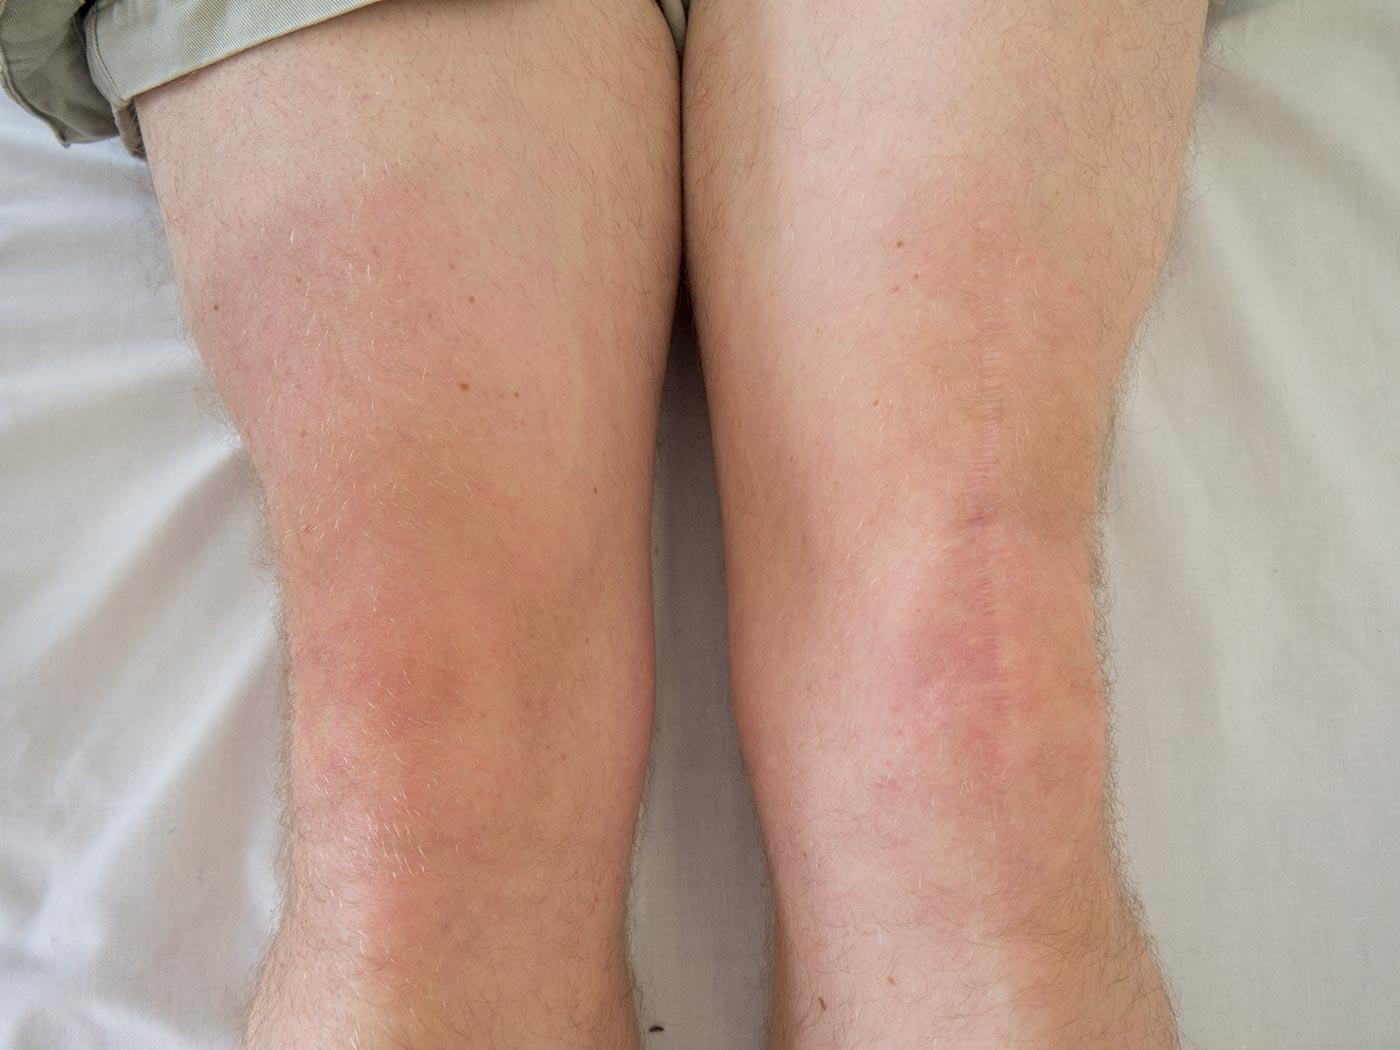 Note the scar over the left knee of this patient